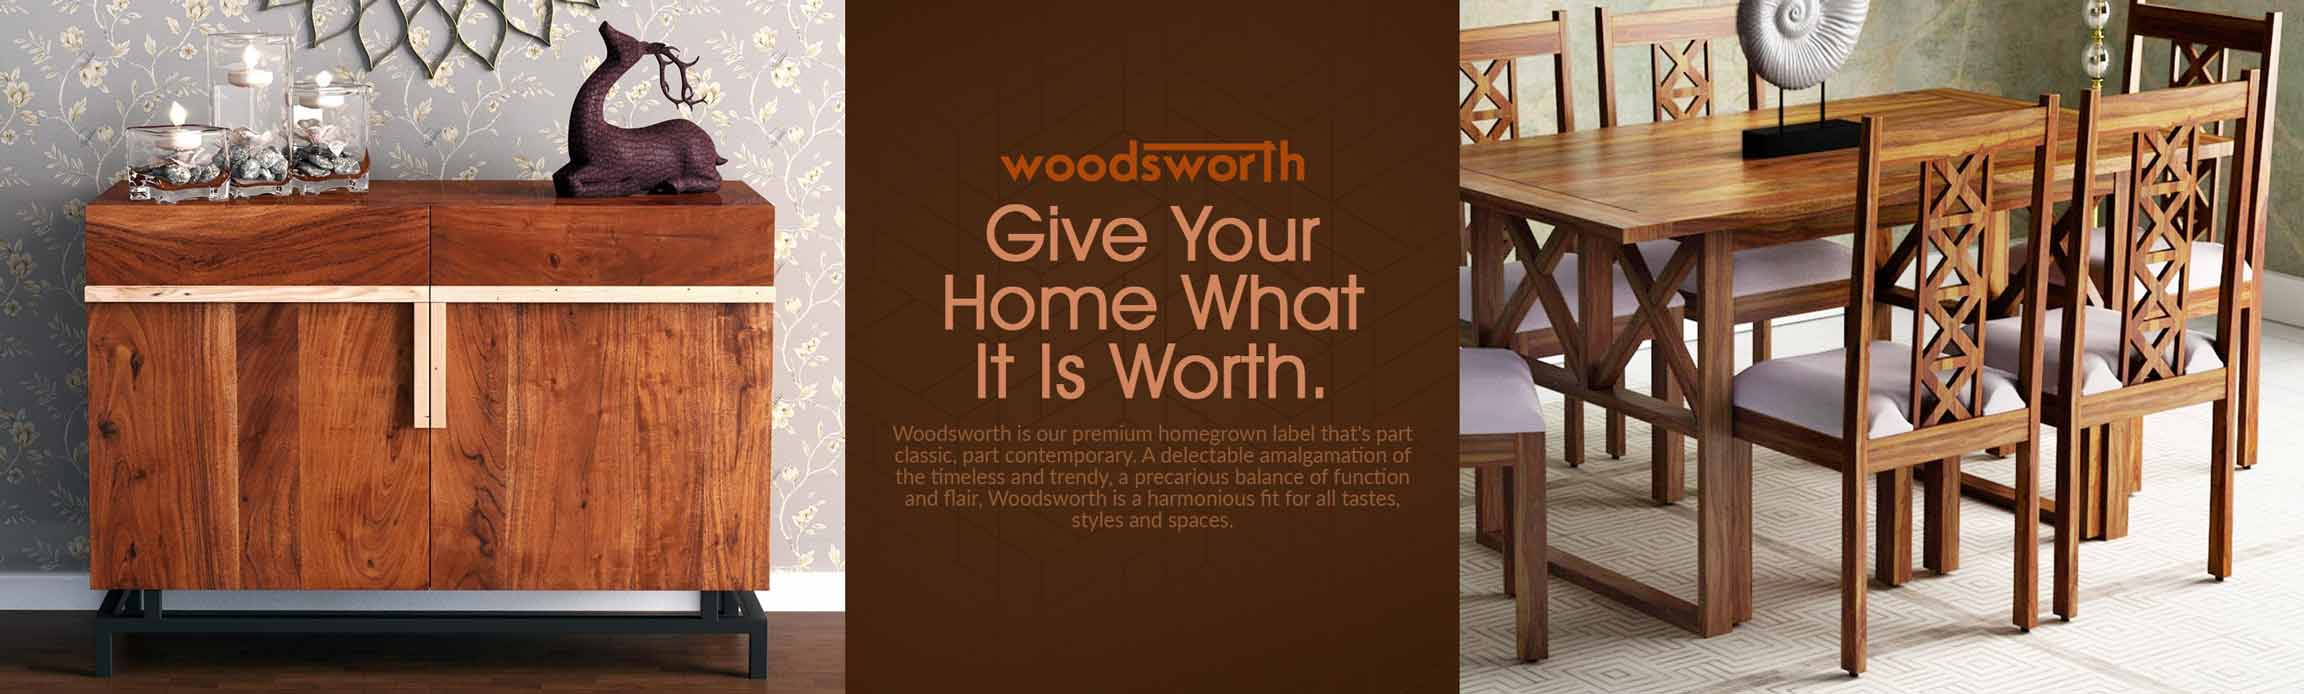 Woodsworth furniture buy woodsworth furniture online in india best prices pepperfry